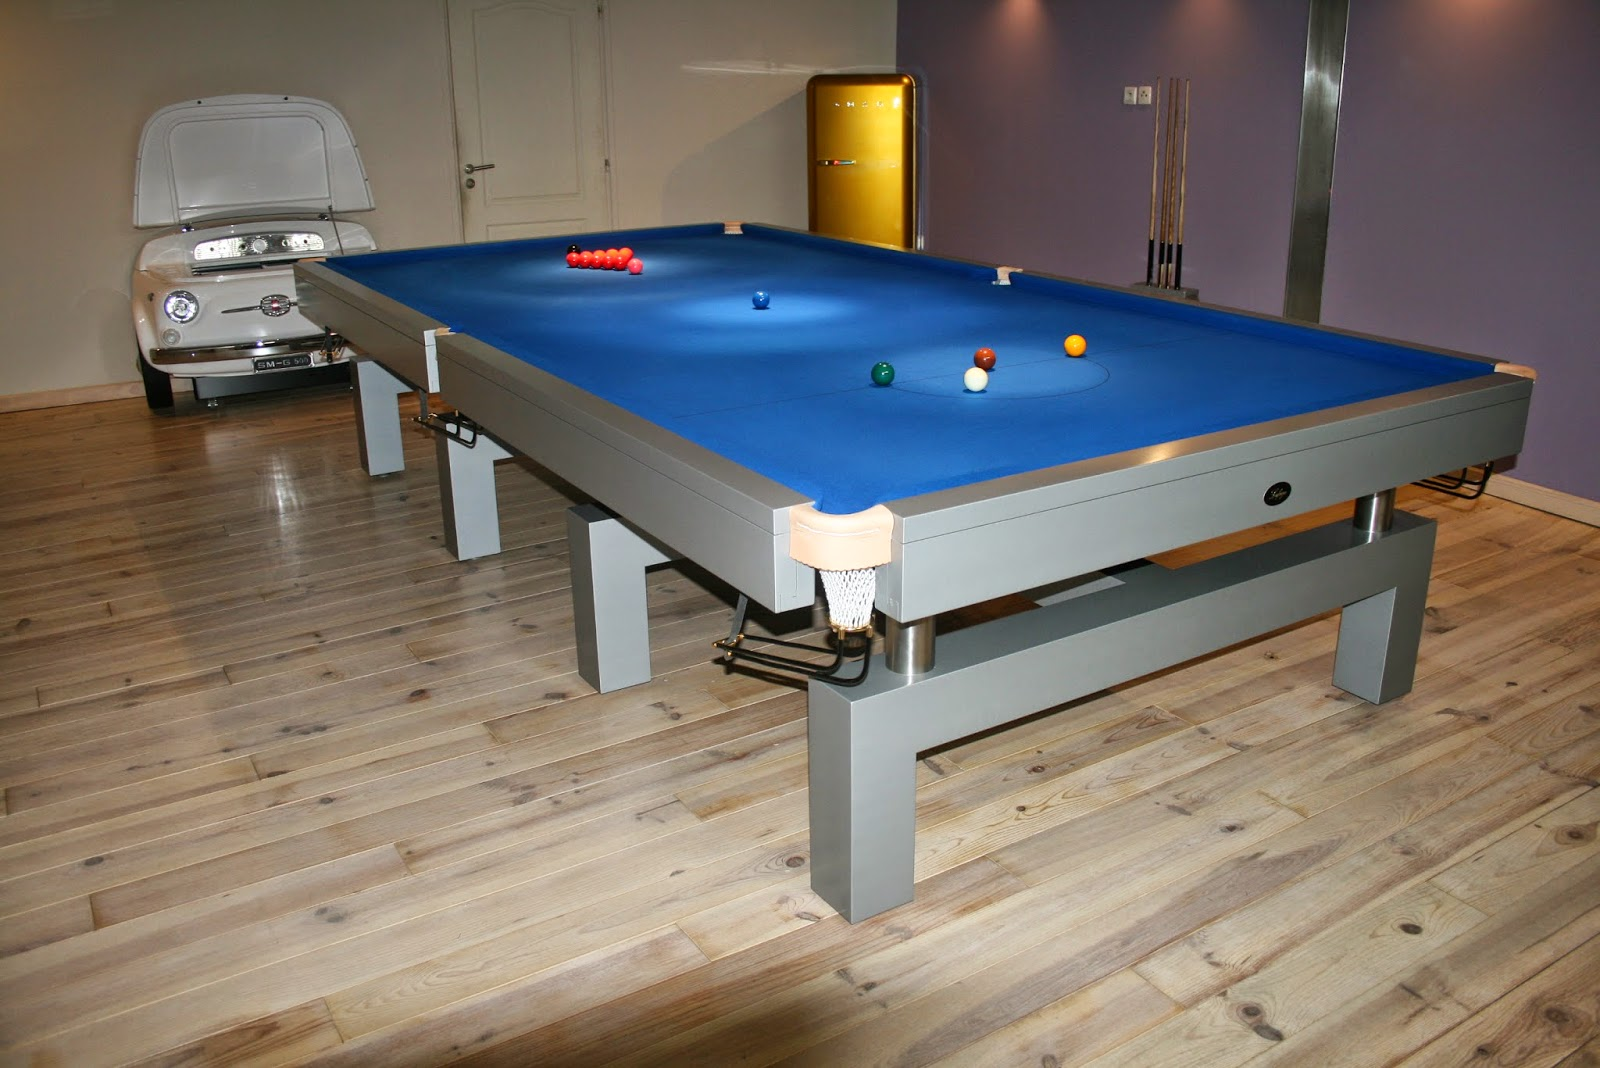 billards lafuge billard lafuge lafuge fabricant de billard. Black Bedroom Furniture Sets. Home Design Ideas